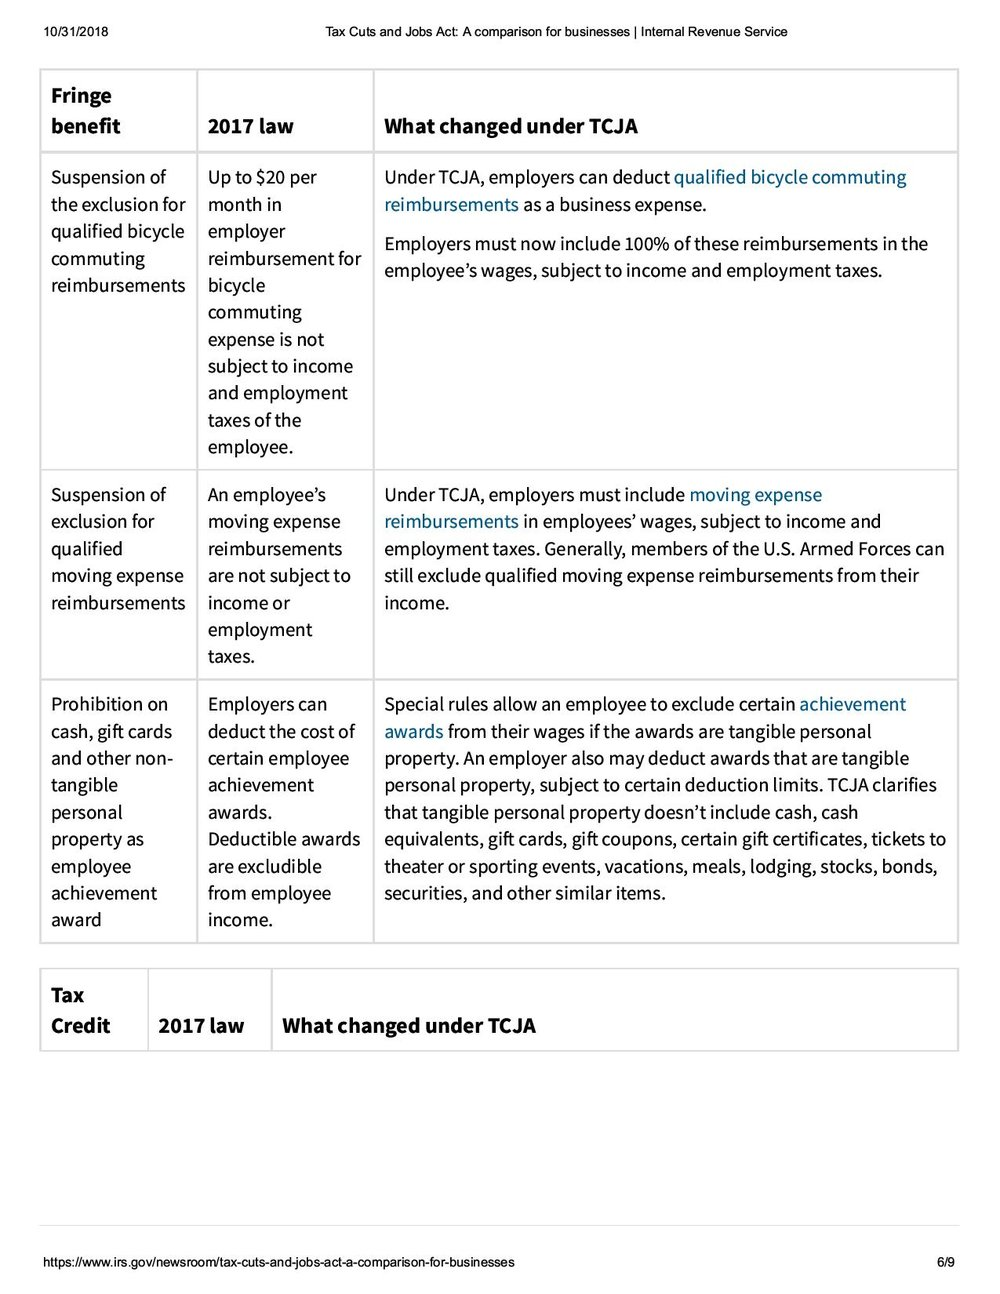 IRS Summary of Key Business Tax Law Changes in the Tax Cuts and Jobs Act posted 1 Nov 2018-page-006.jpg